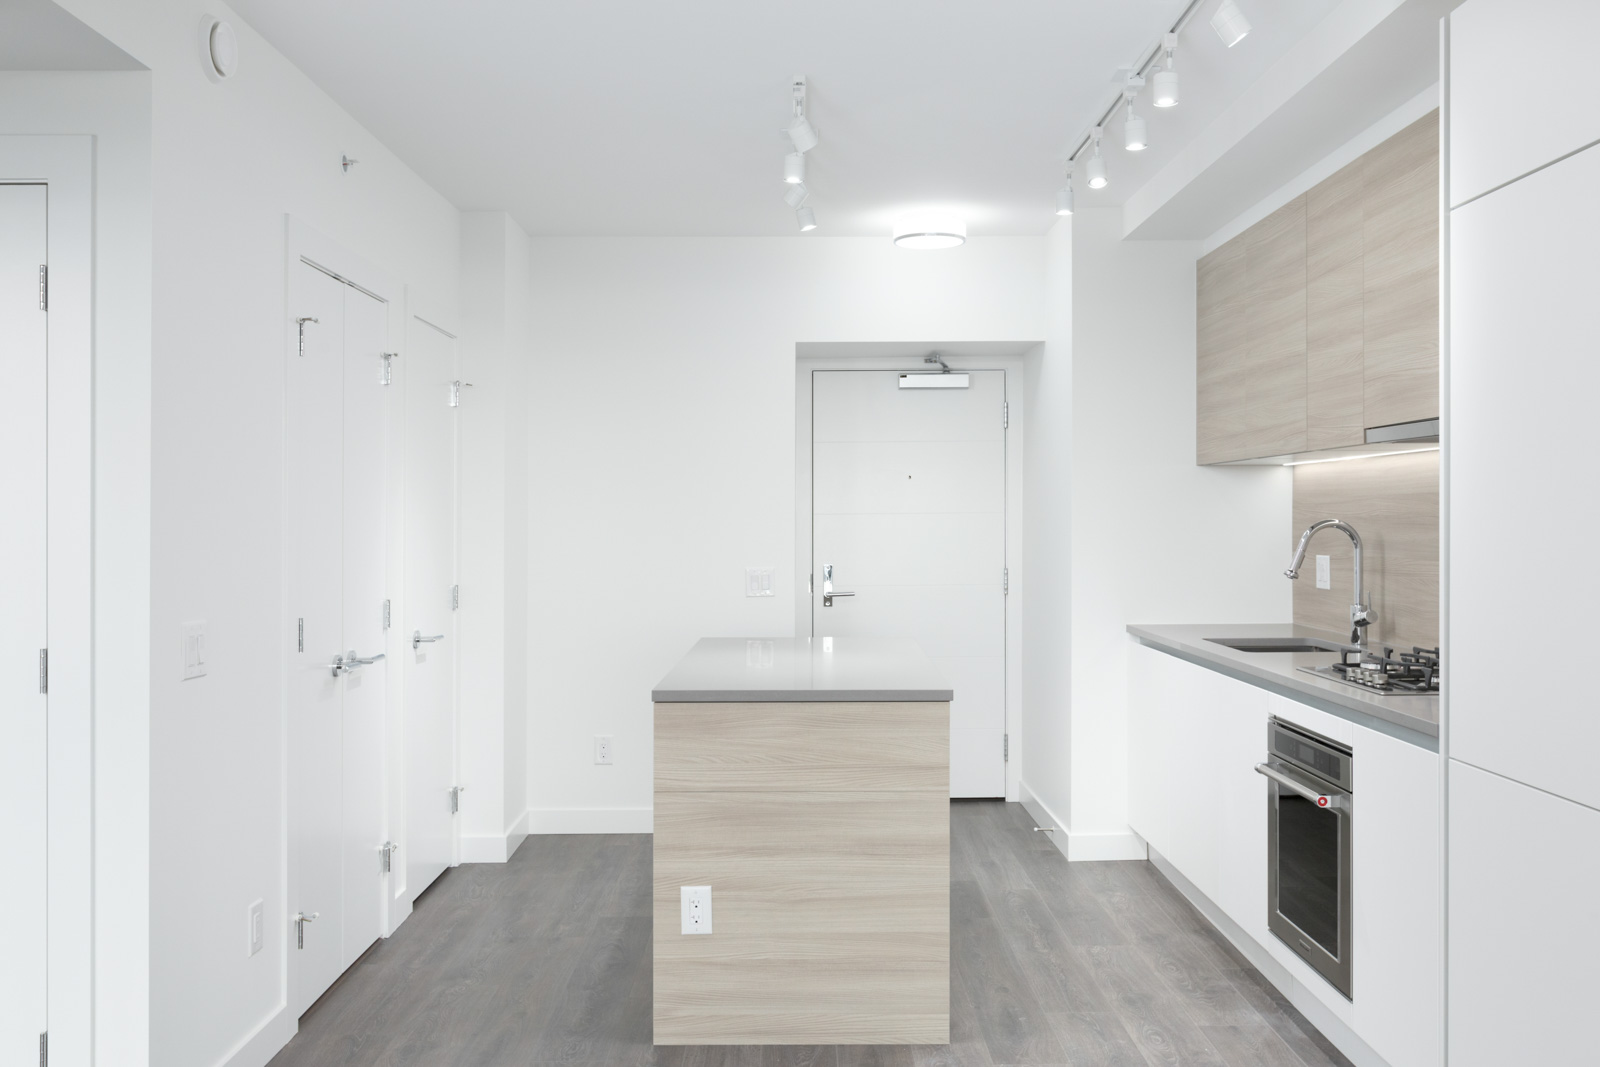 side view of condo kitchen along wall on left with island in middle and hardwood floors and white walls and doorway in the background